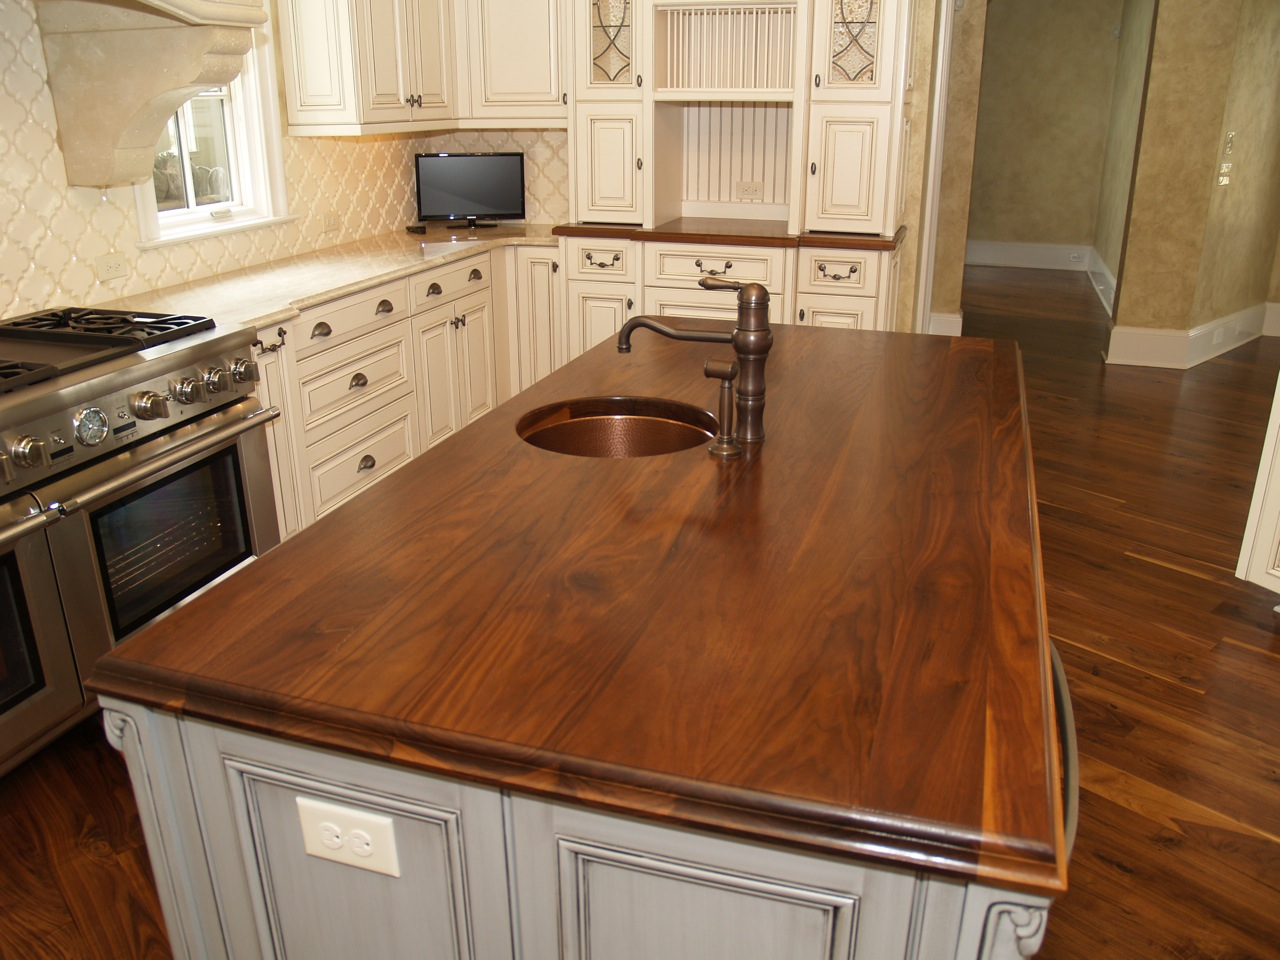 countertops wooden kitchen countertops Walnut kitchen countertop wide plank flat grain construction 1 75 thick large double roman ogee edge undermount sink with permanent finish